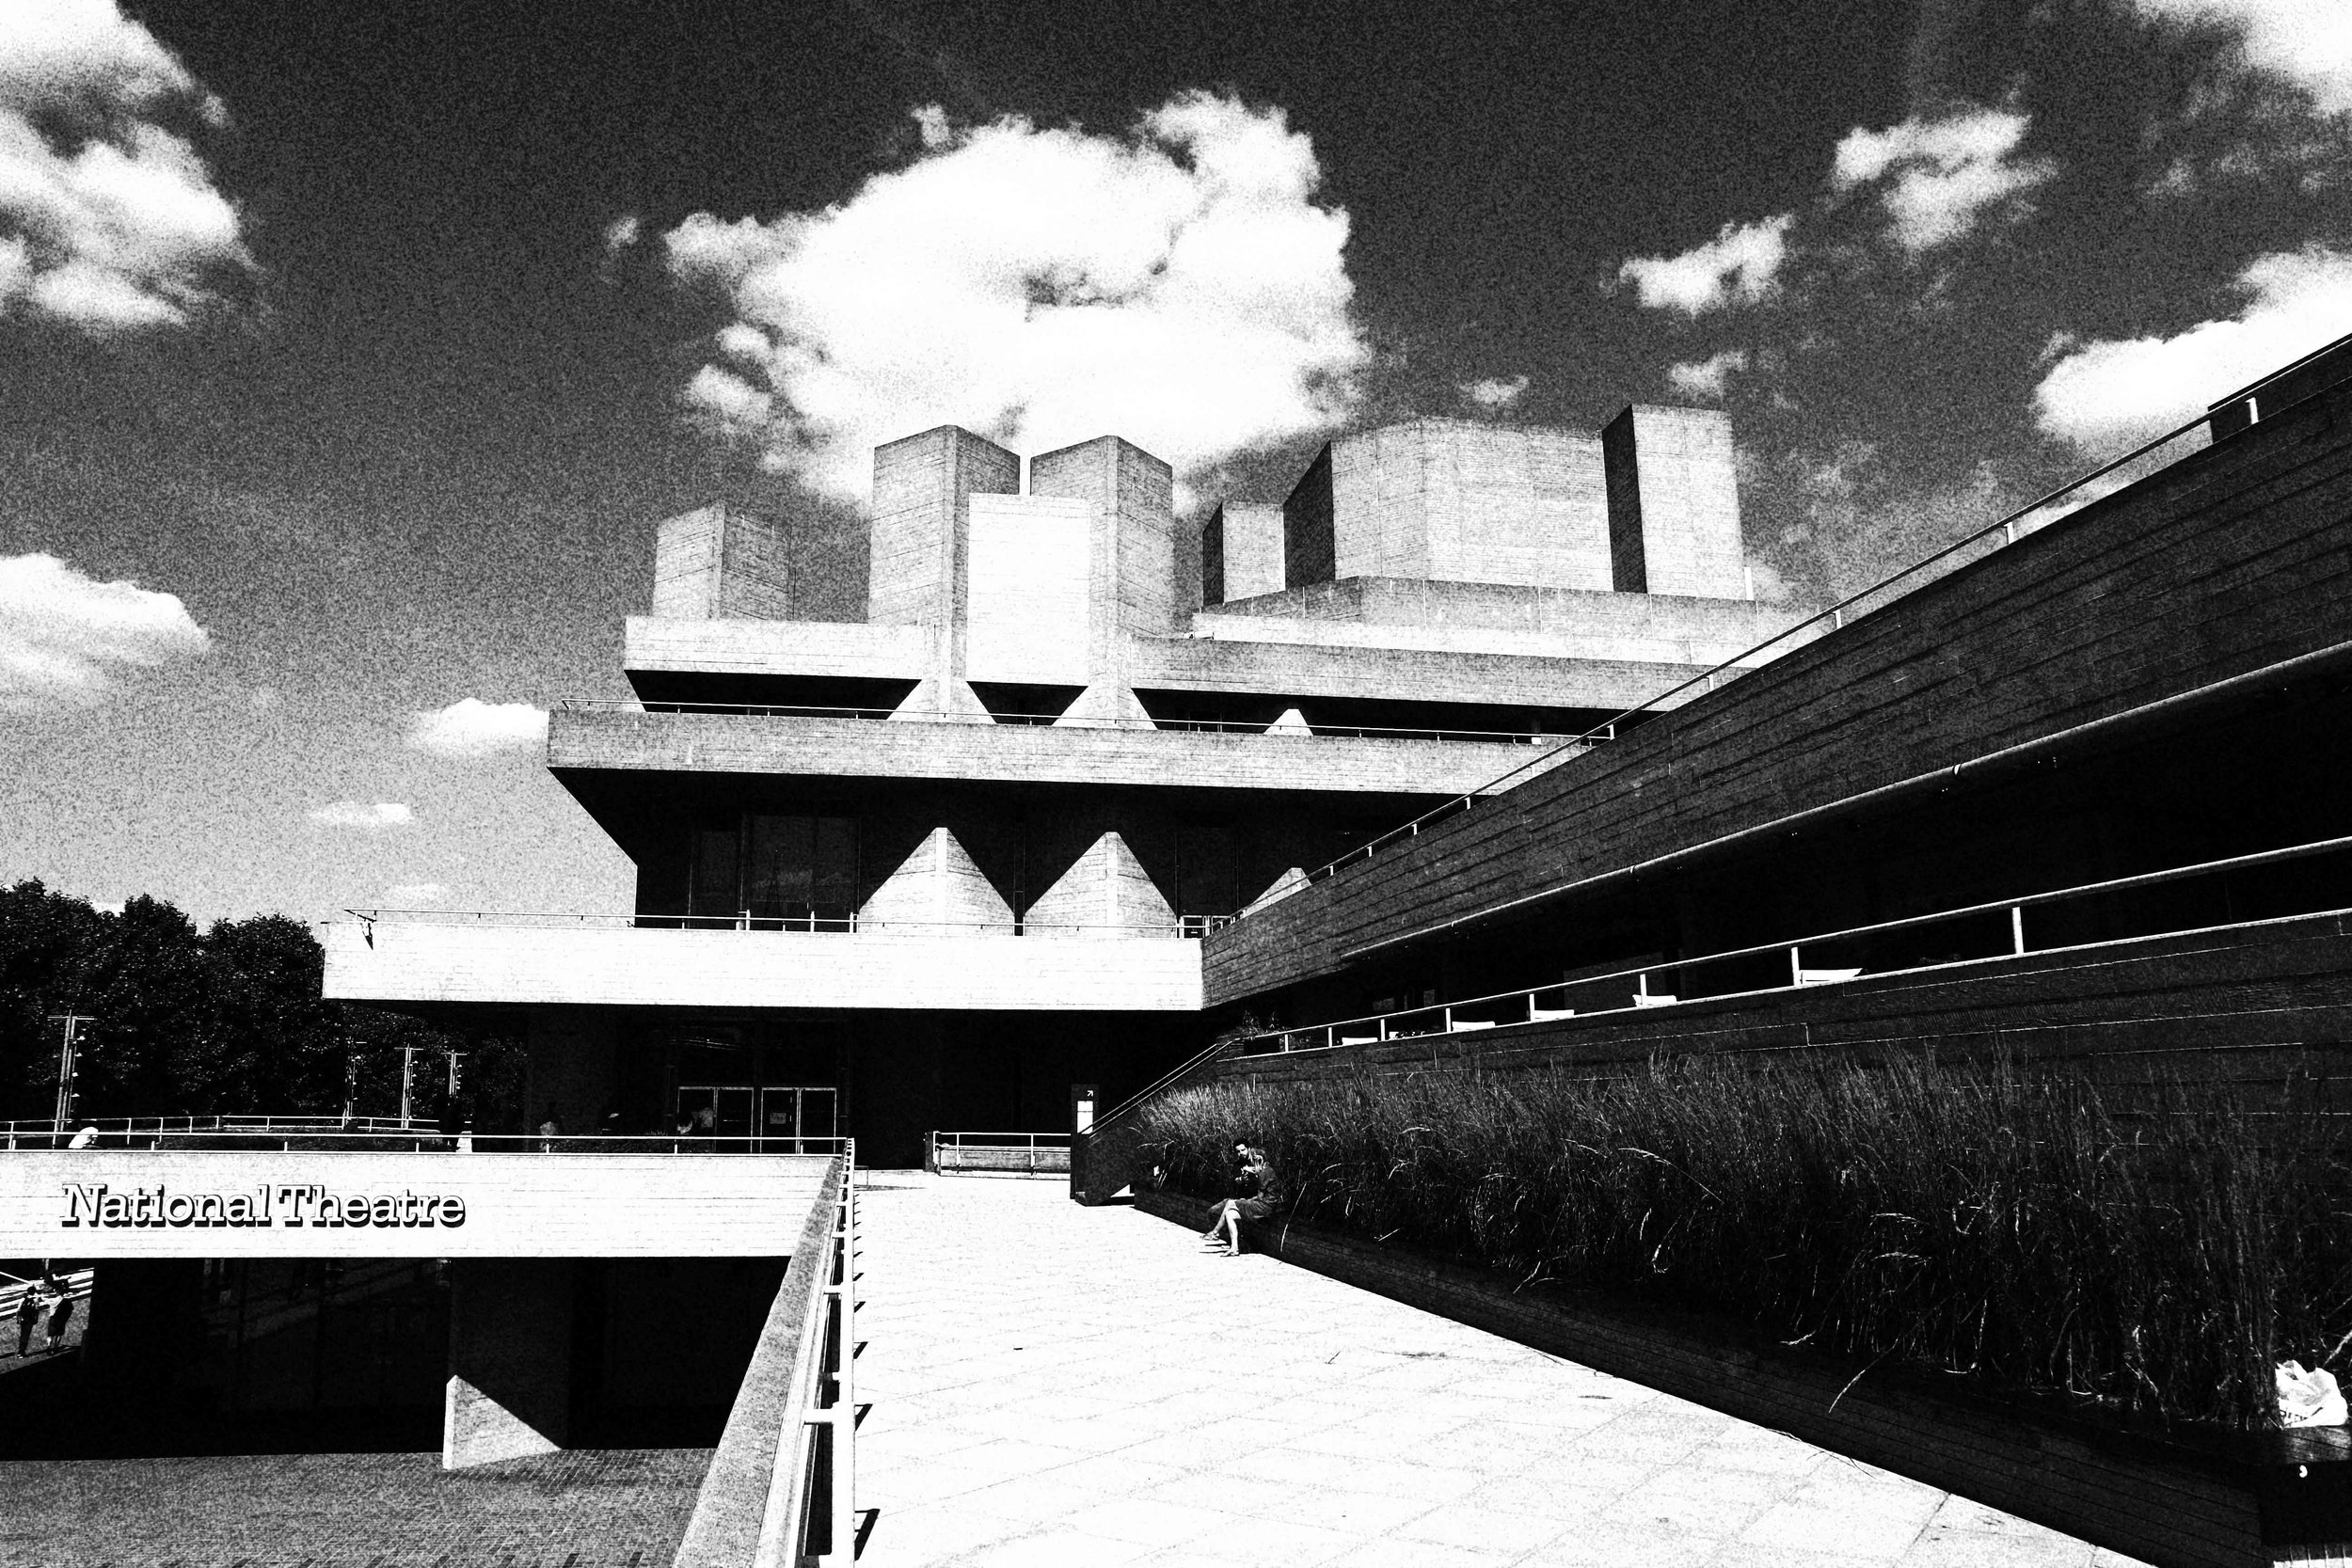 nationaltheatre1.jpg